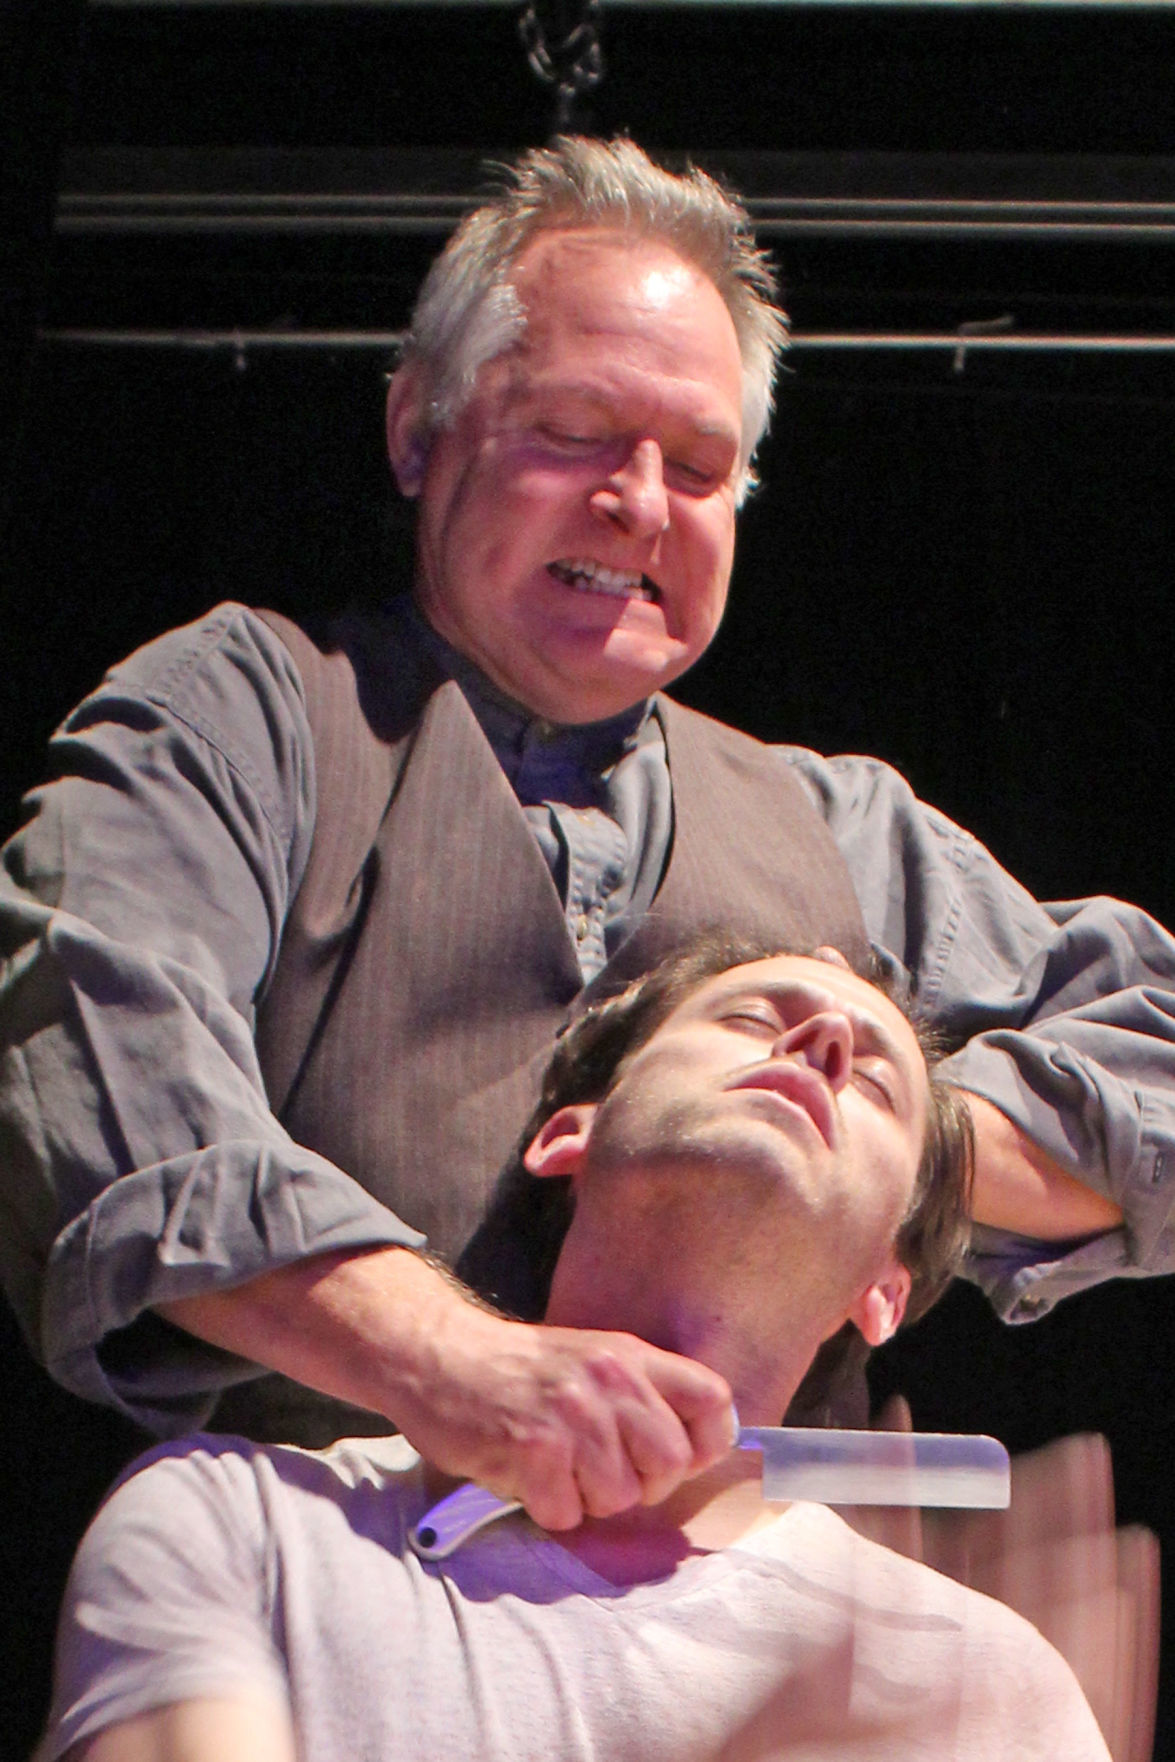 Unconventional: Chris Carsten as Sweeney Todd